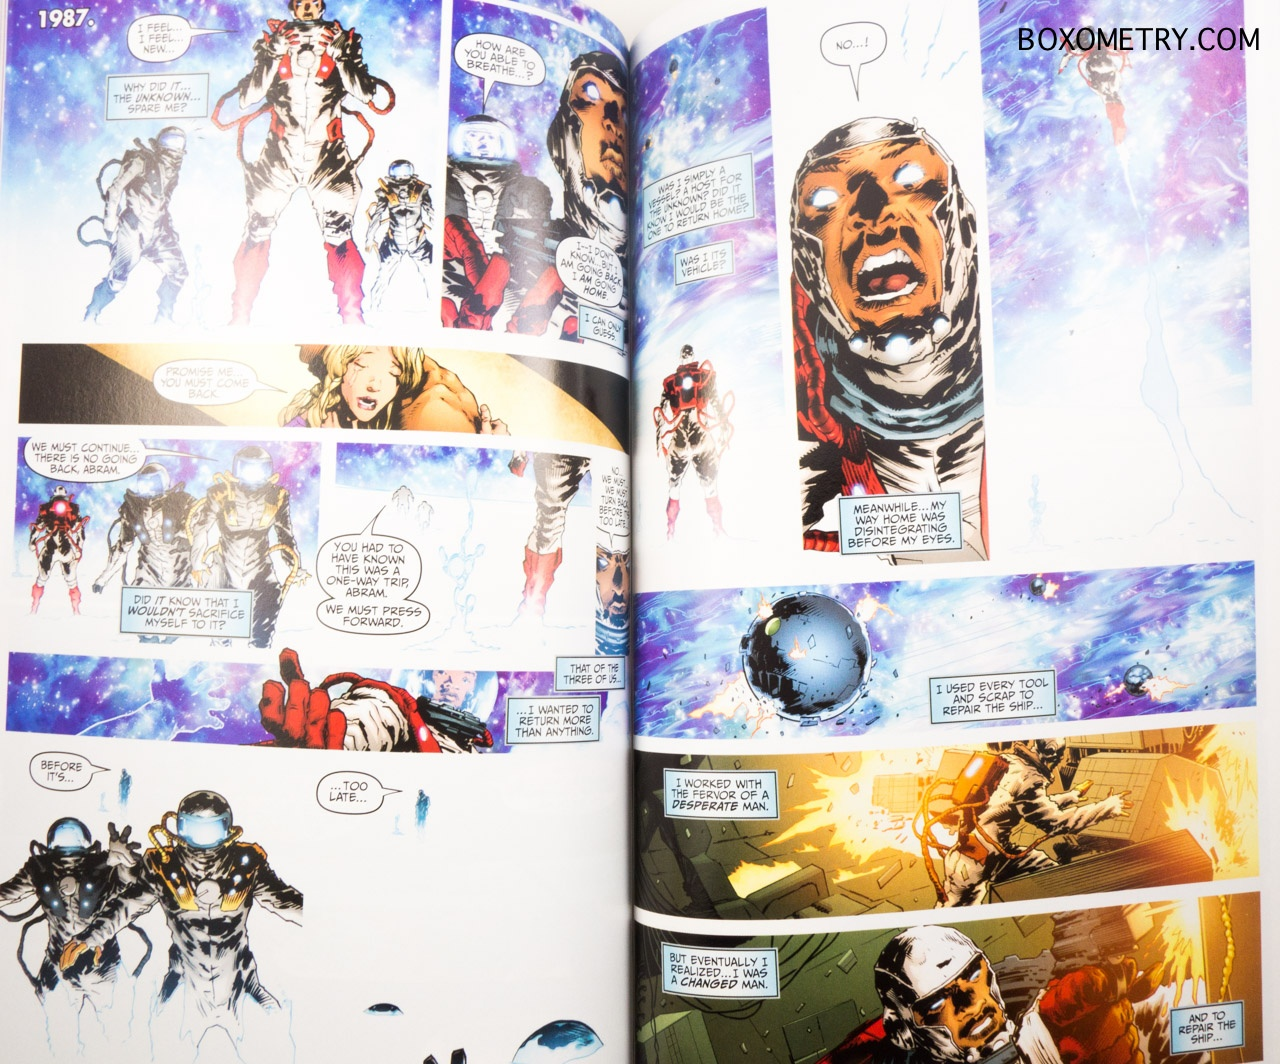 Boxometry Comic Bento July 2015 Review - Divinity TP Inside